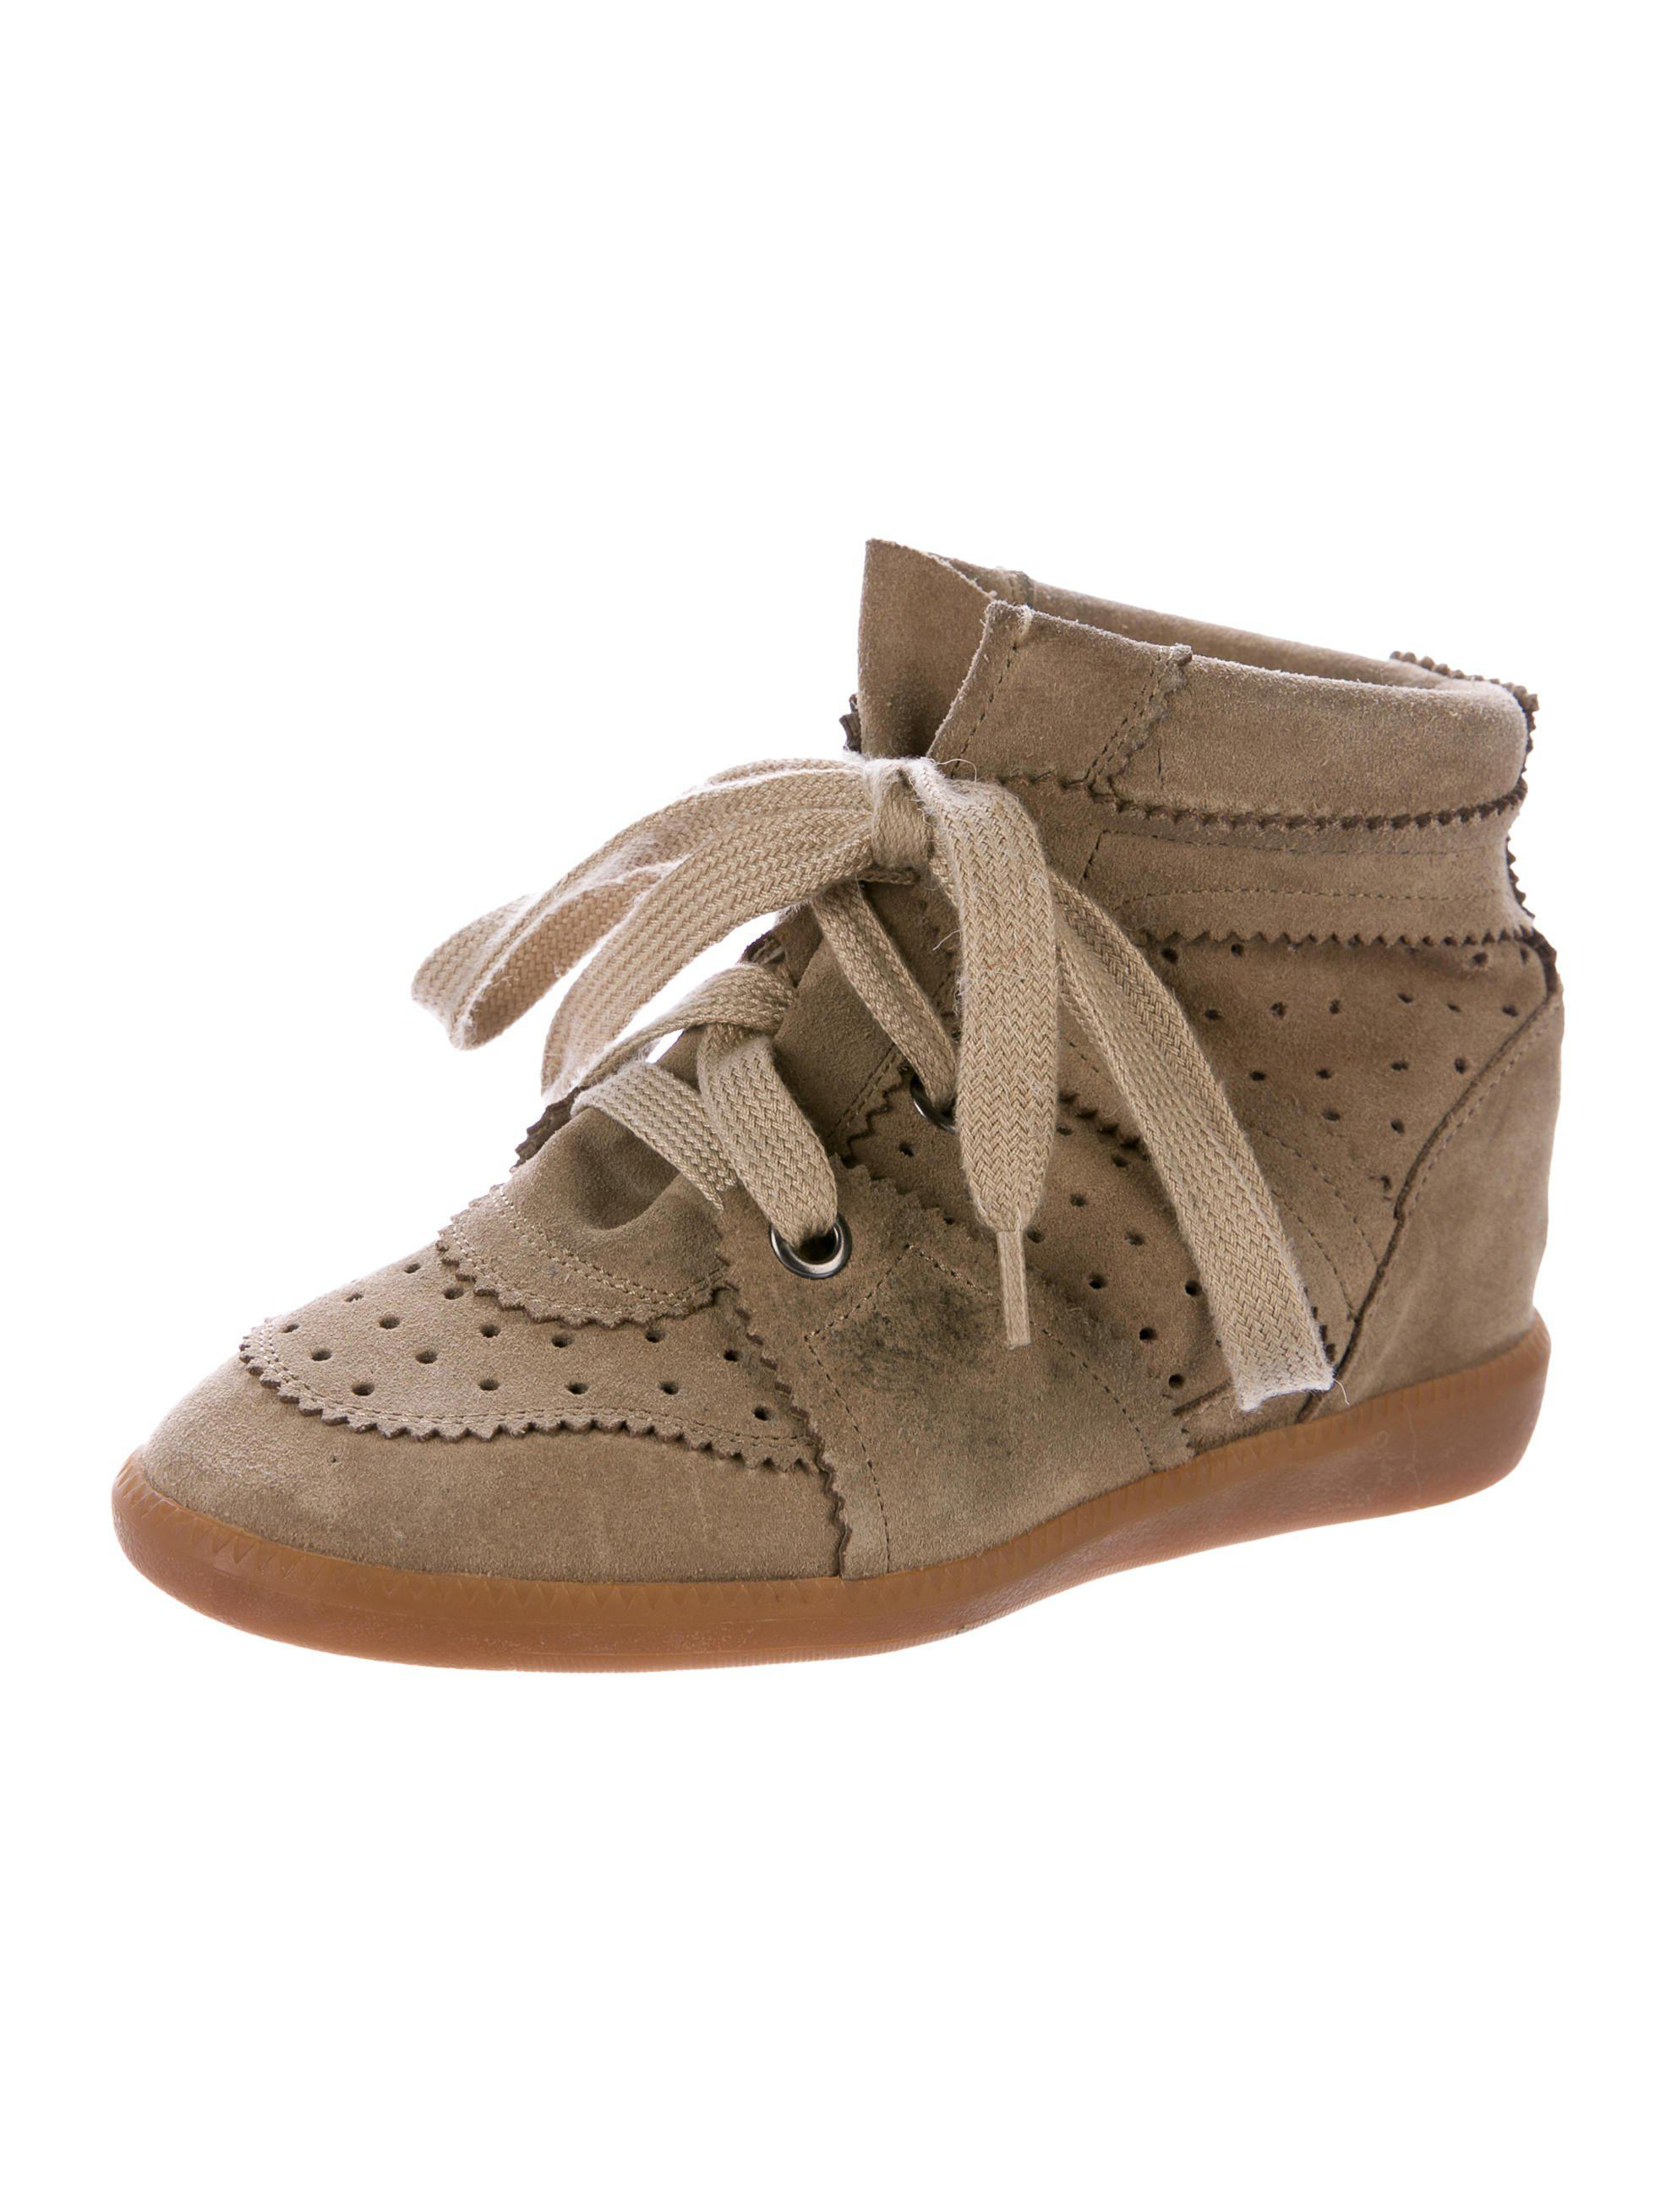 7c2f2b14b9c28d Lyst - Isabel Marant Bobby Wedge Sneakers Olive in Green